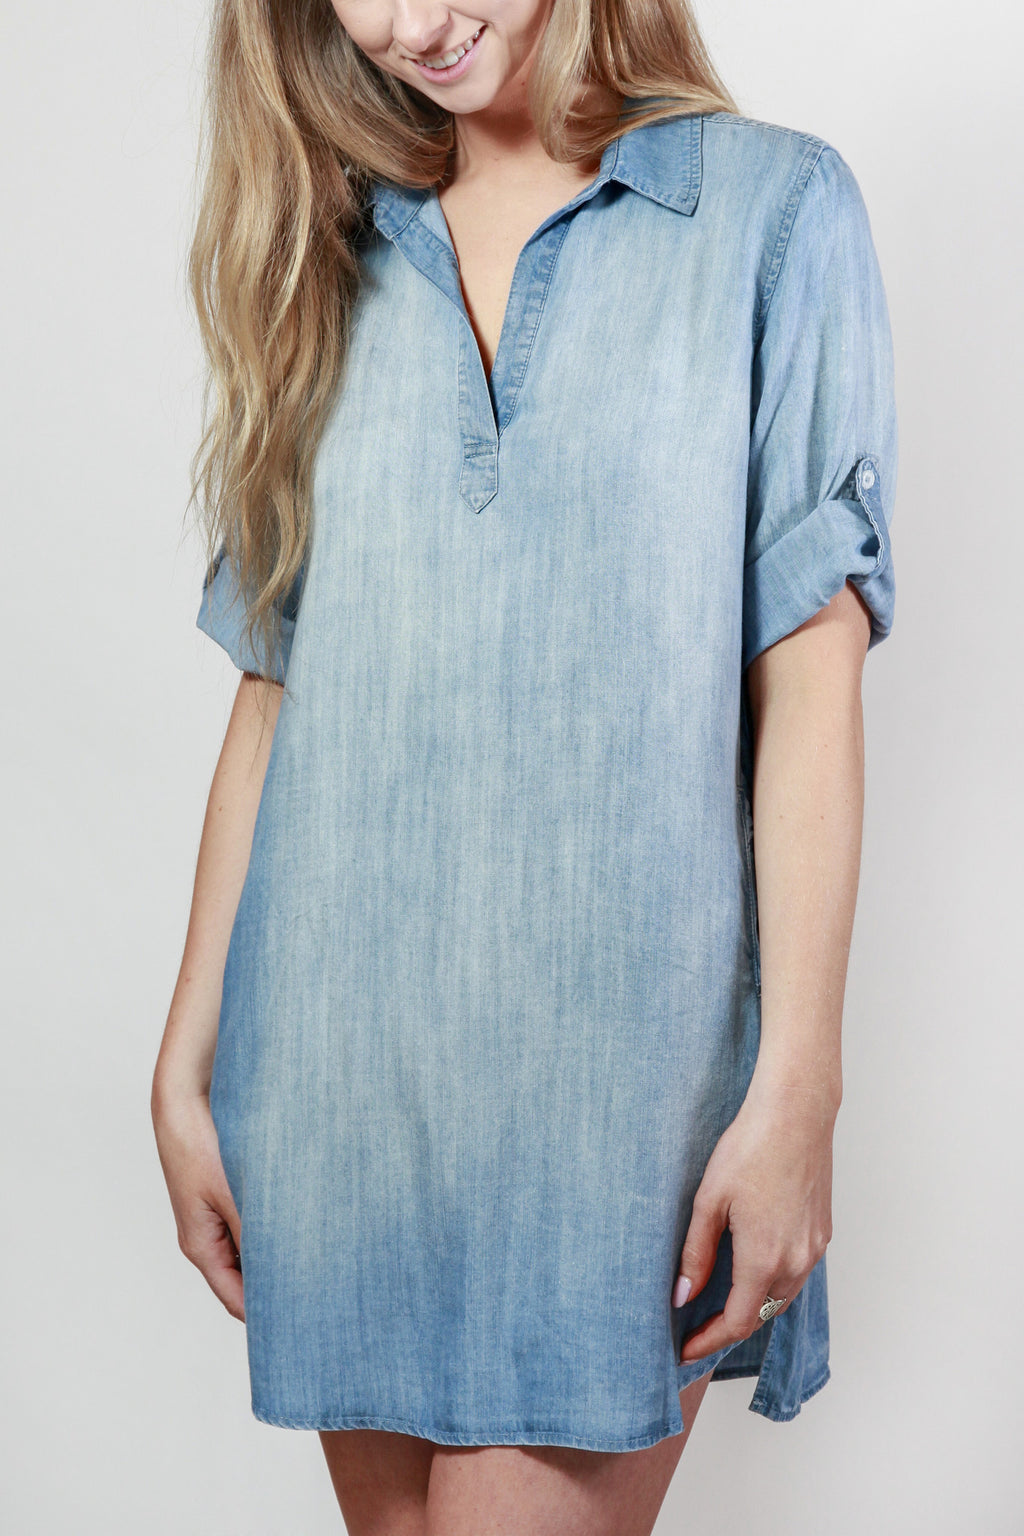 Sunday Kind Of Love Tunic Dress